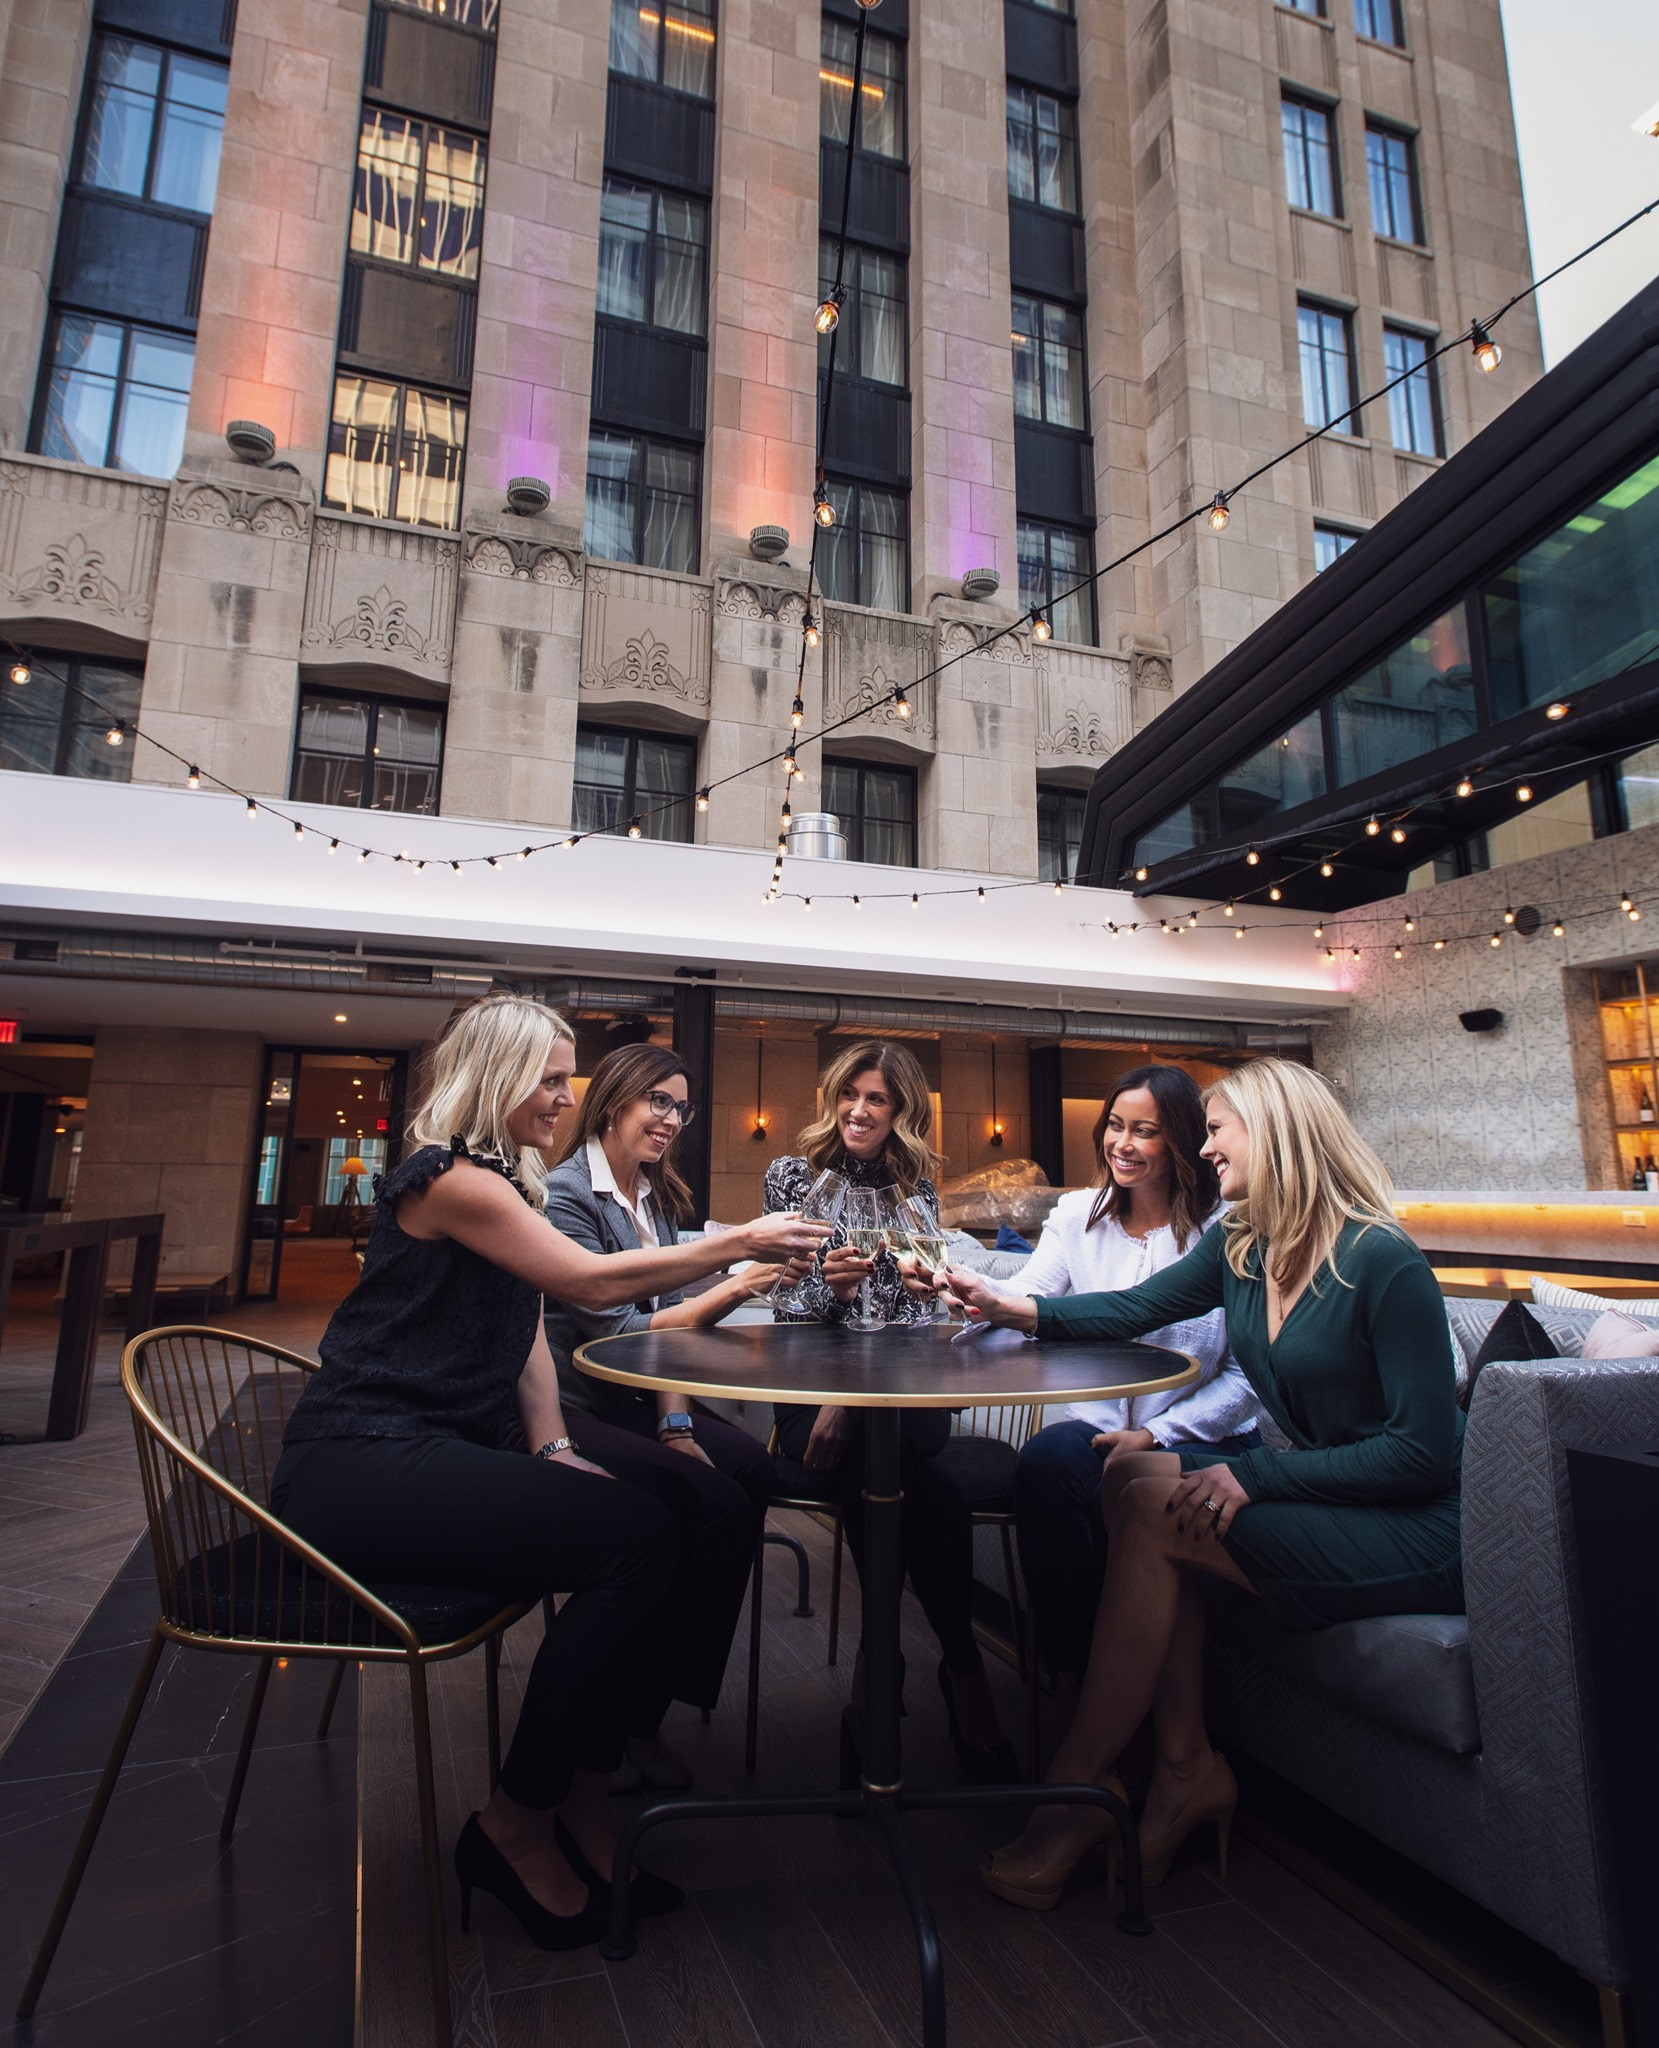 Four women sit around a table, clinking glasses. The black table is outside on The Rand Tower's rooftop terrace with dimly lit bistro lights strung above the table. In the background is the new hotel tower.